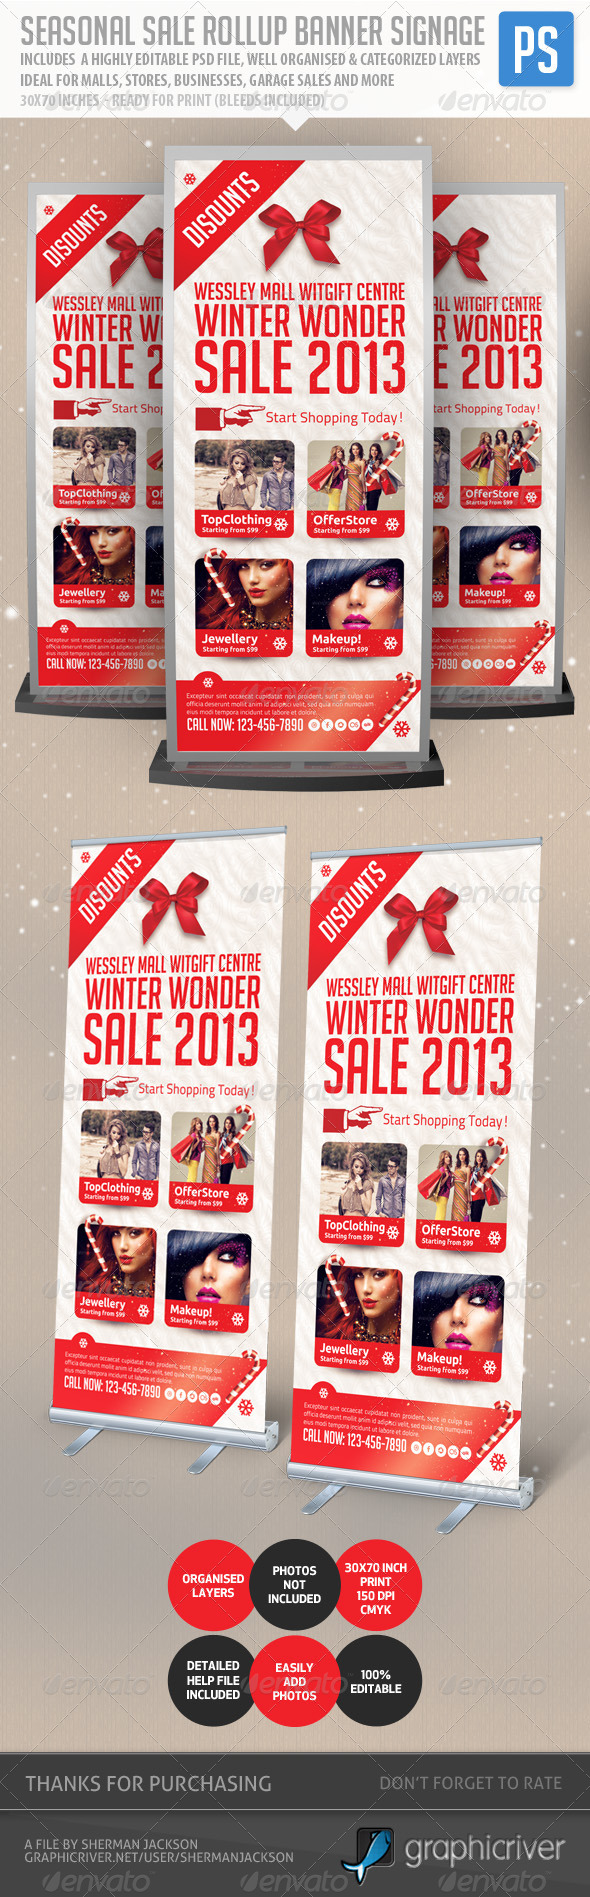 GraphicRiver Seasonal Sale Rollup Banner Signage 6366762